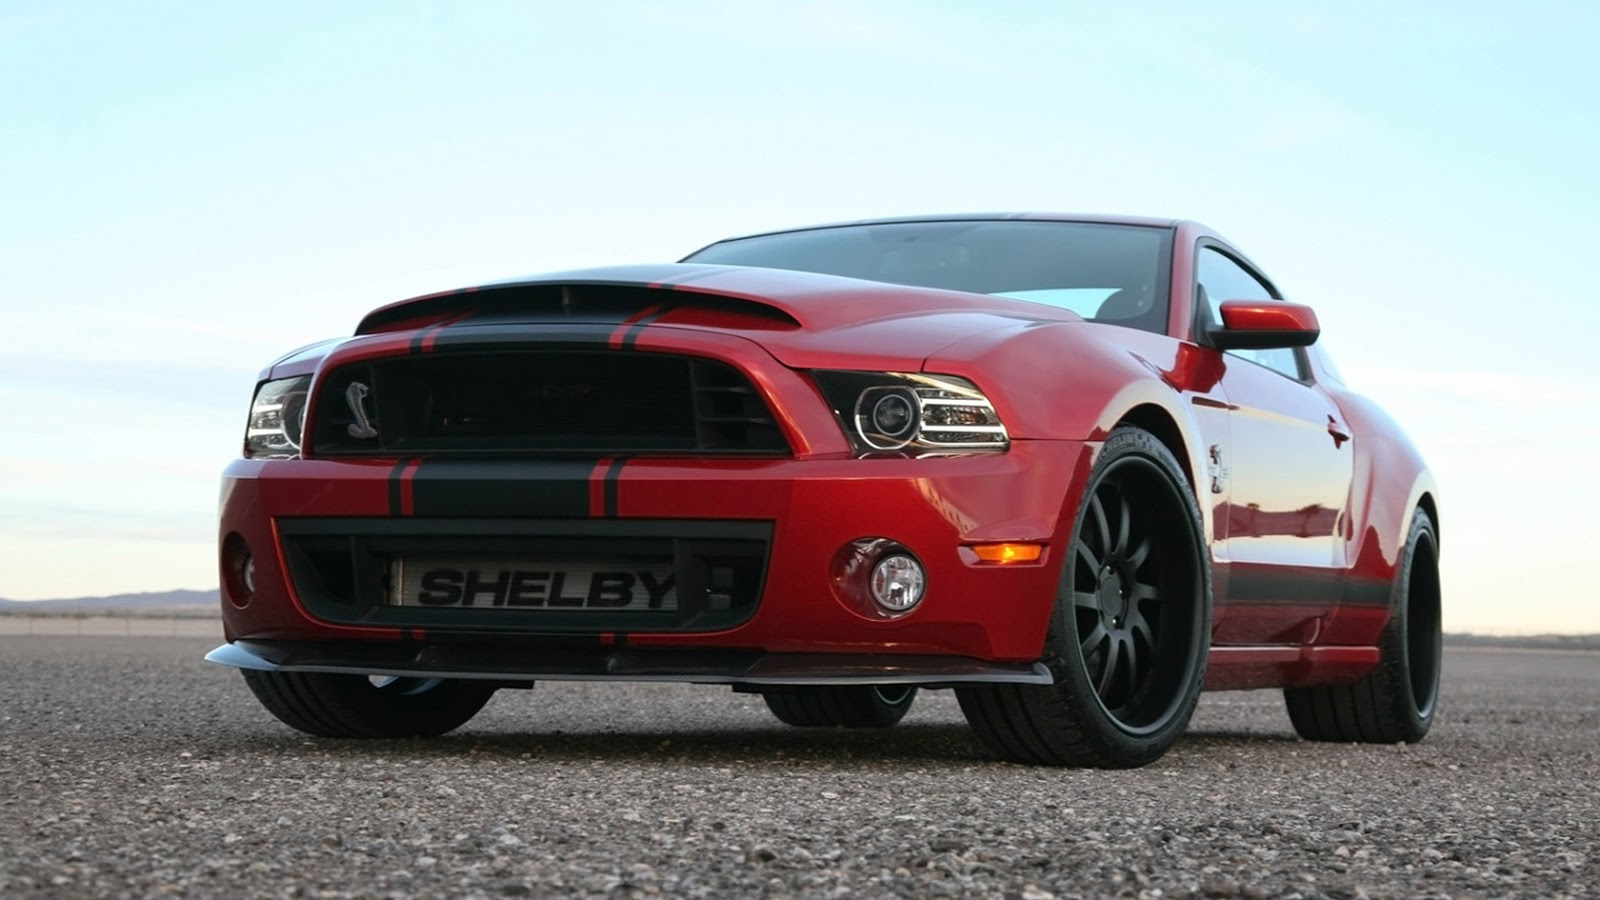 2014 Shelby Ford Mustang GT500 Super Snake 850 hp